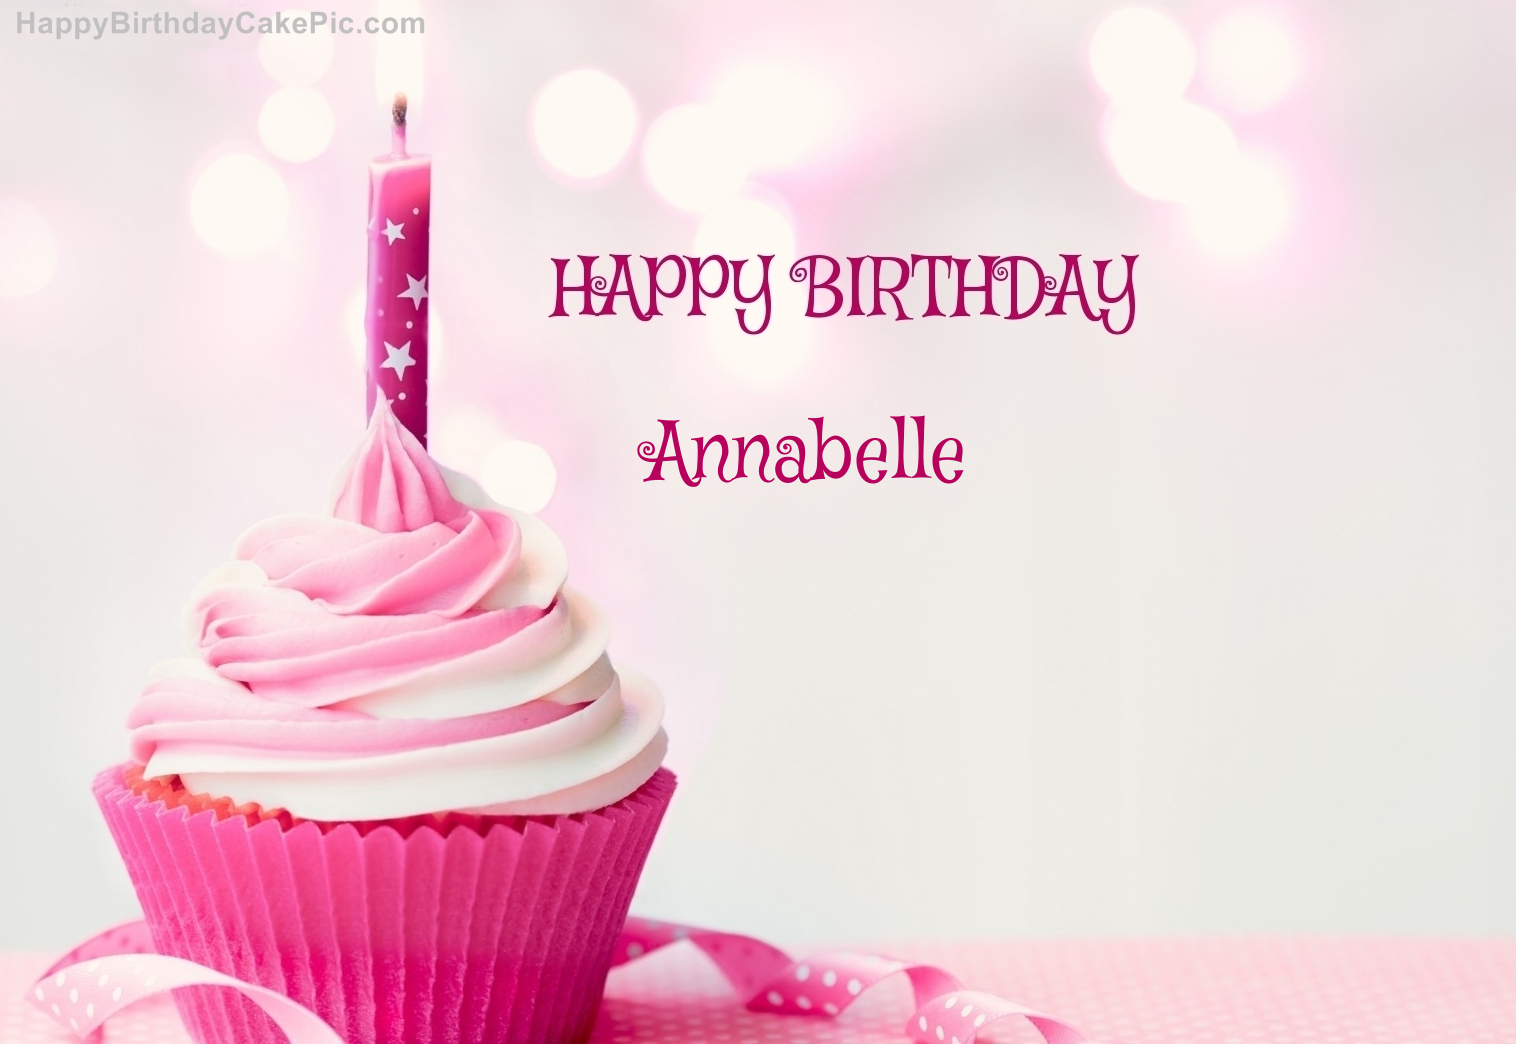 Image result for happy birthday annabelle cupcake images